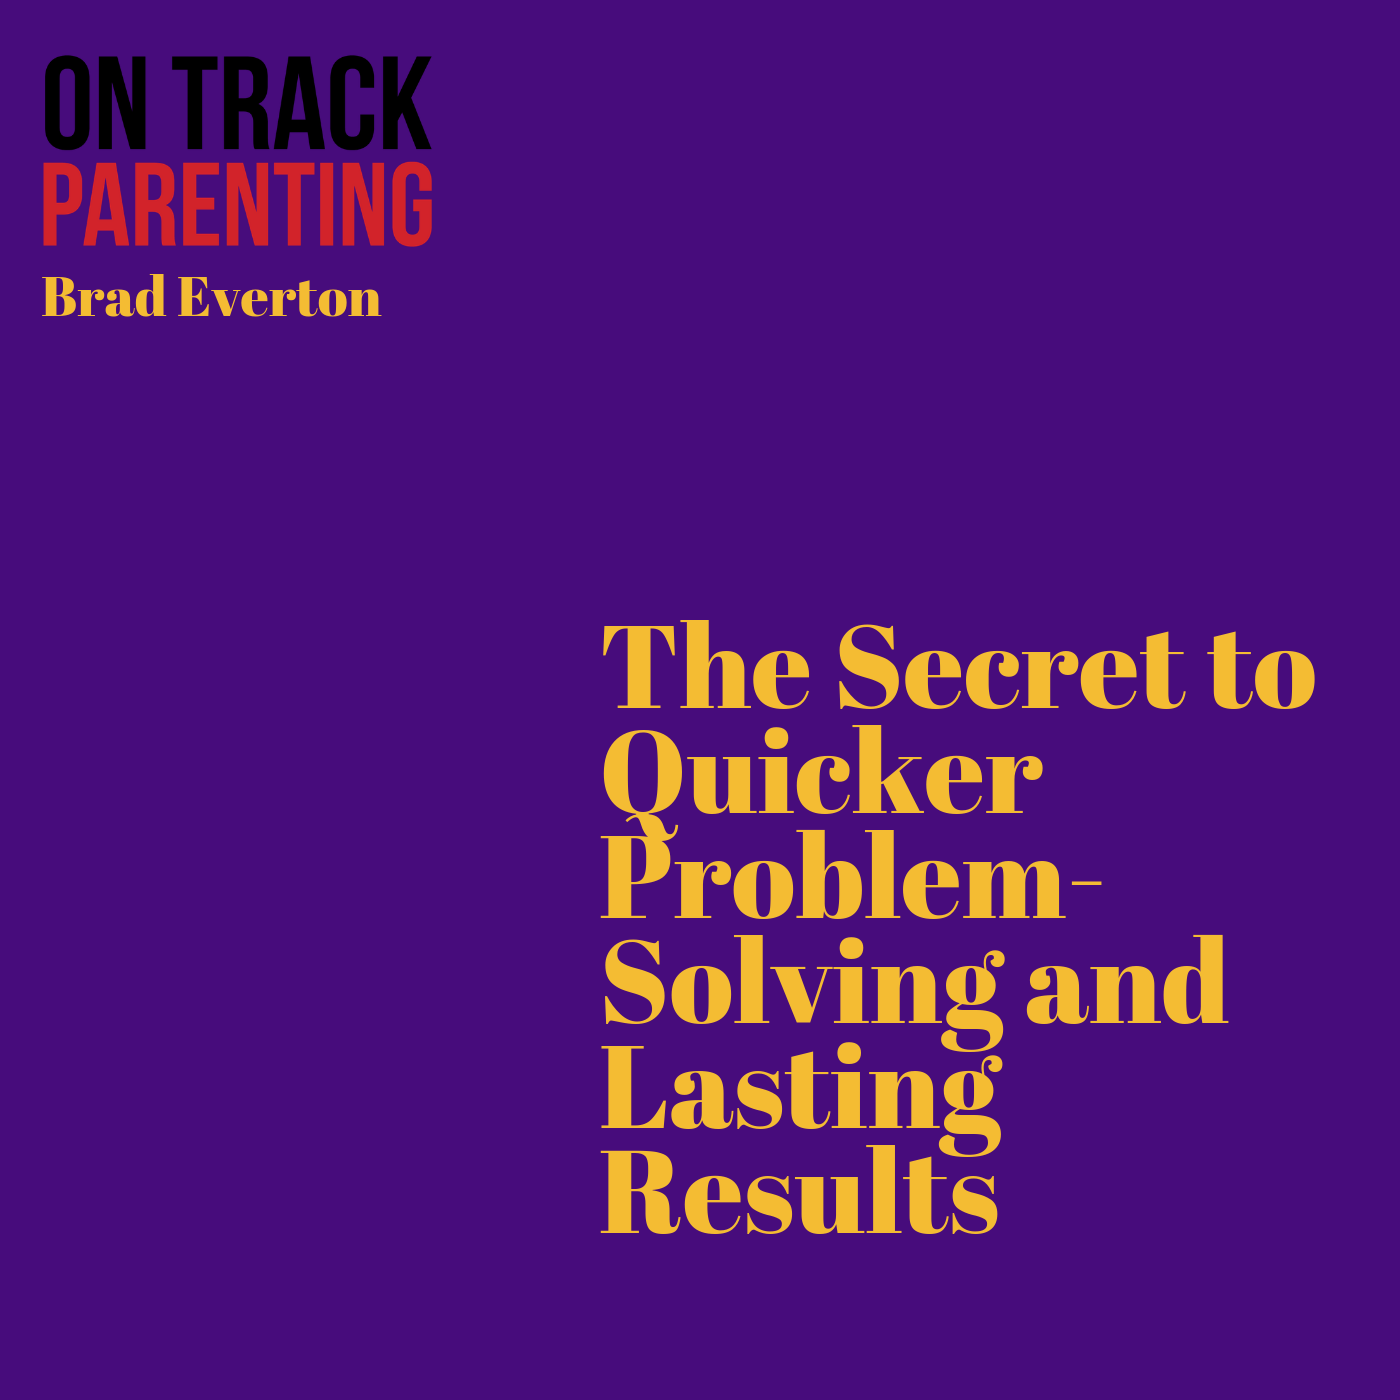 The Secret to Quicker Problem-Solving and Lasting Results